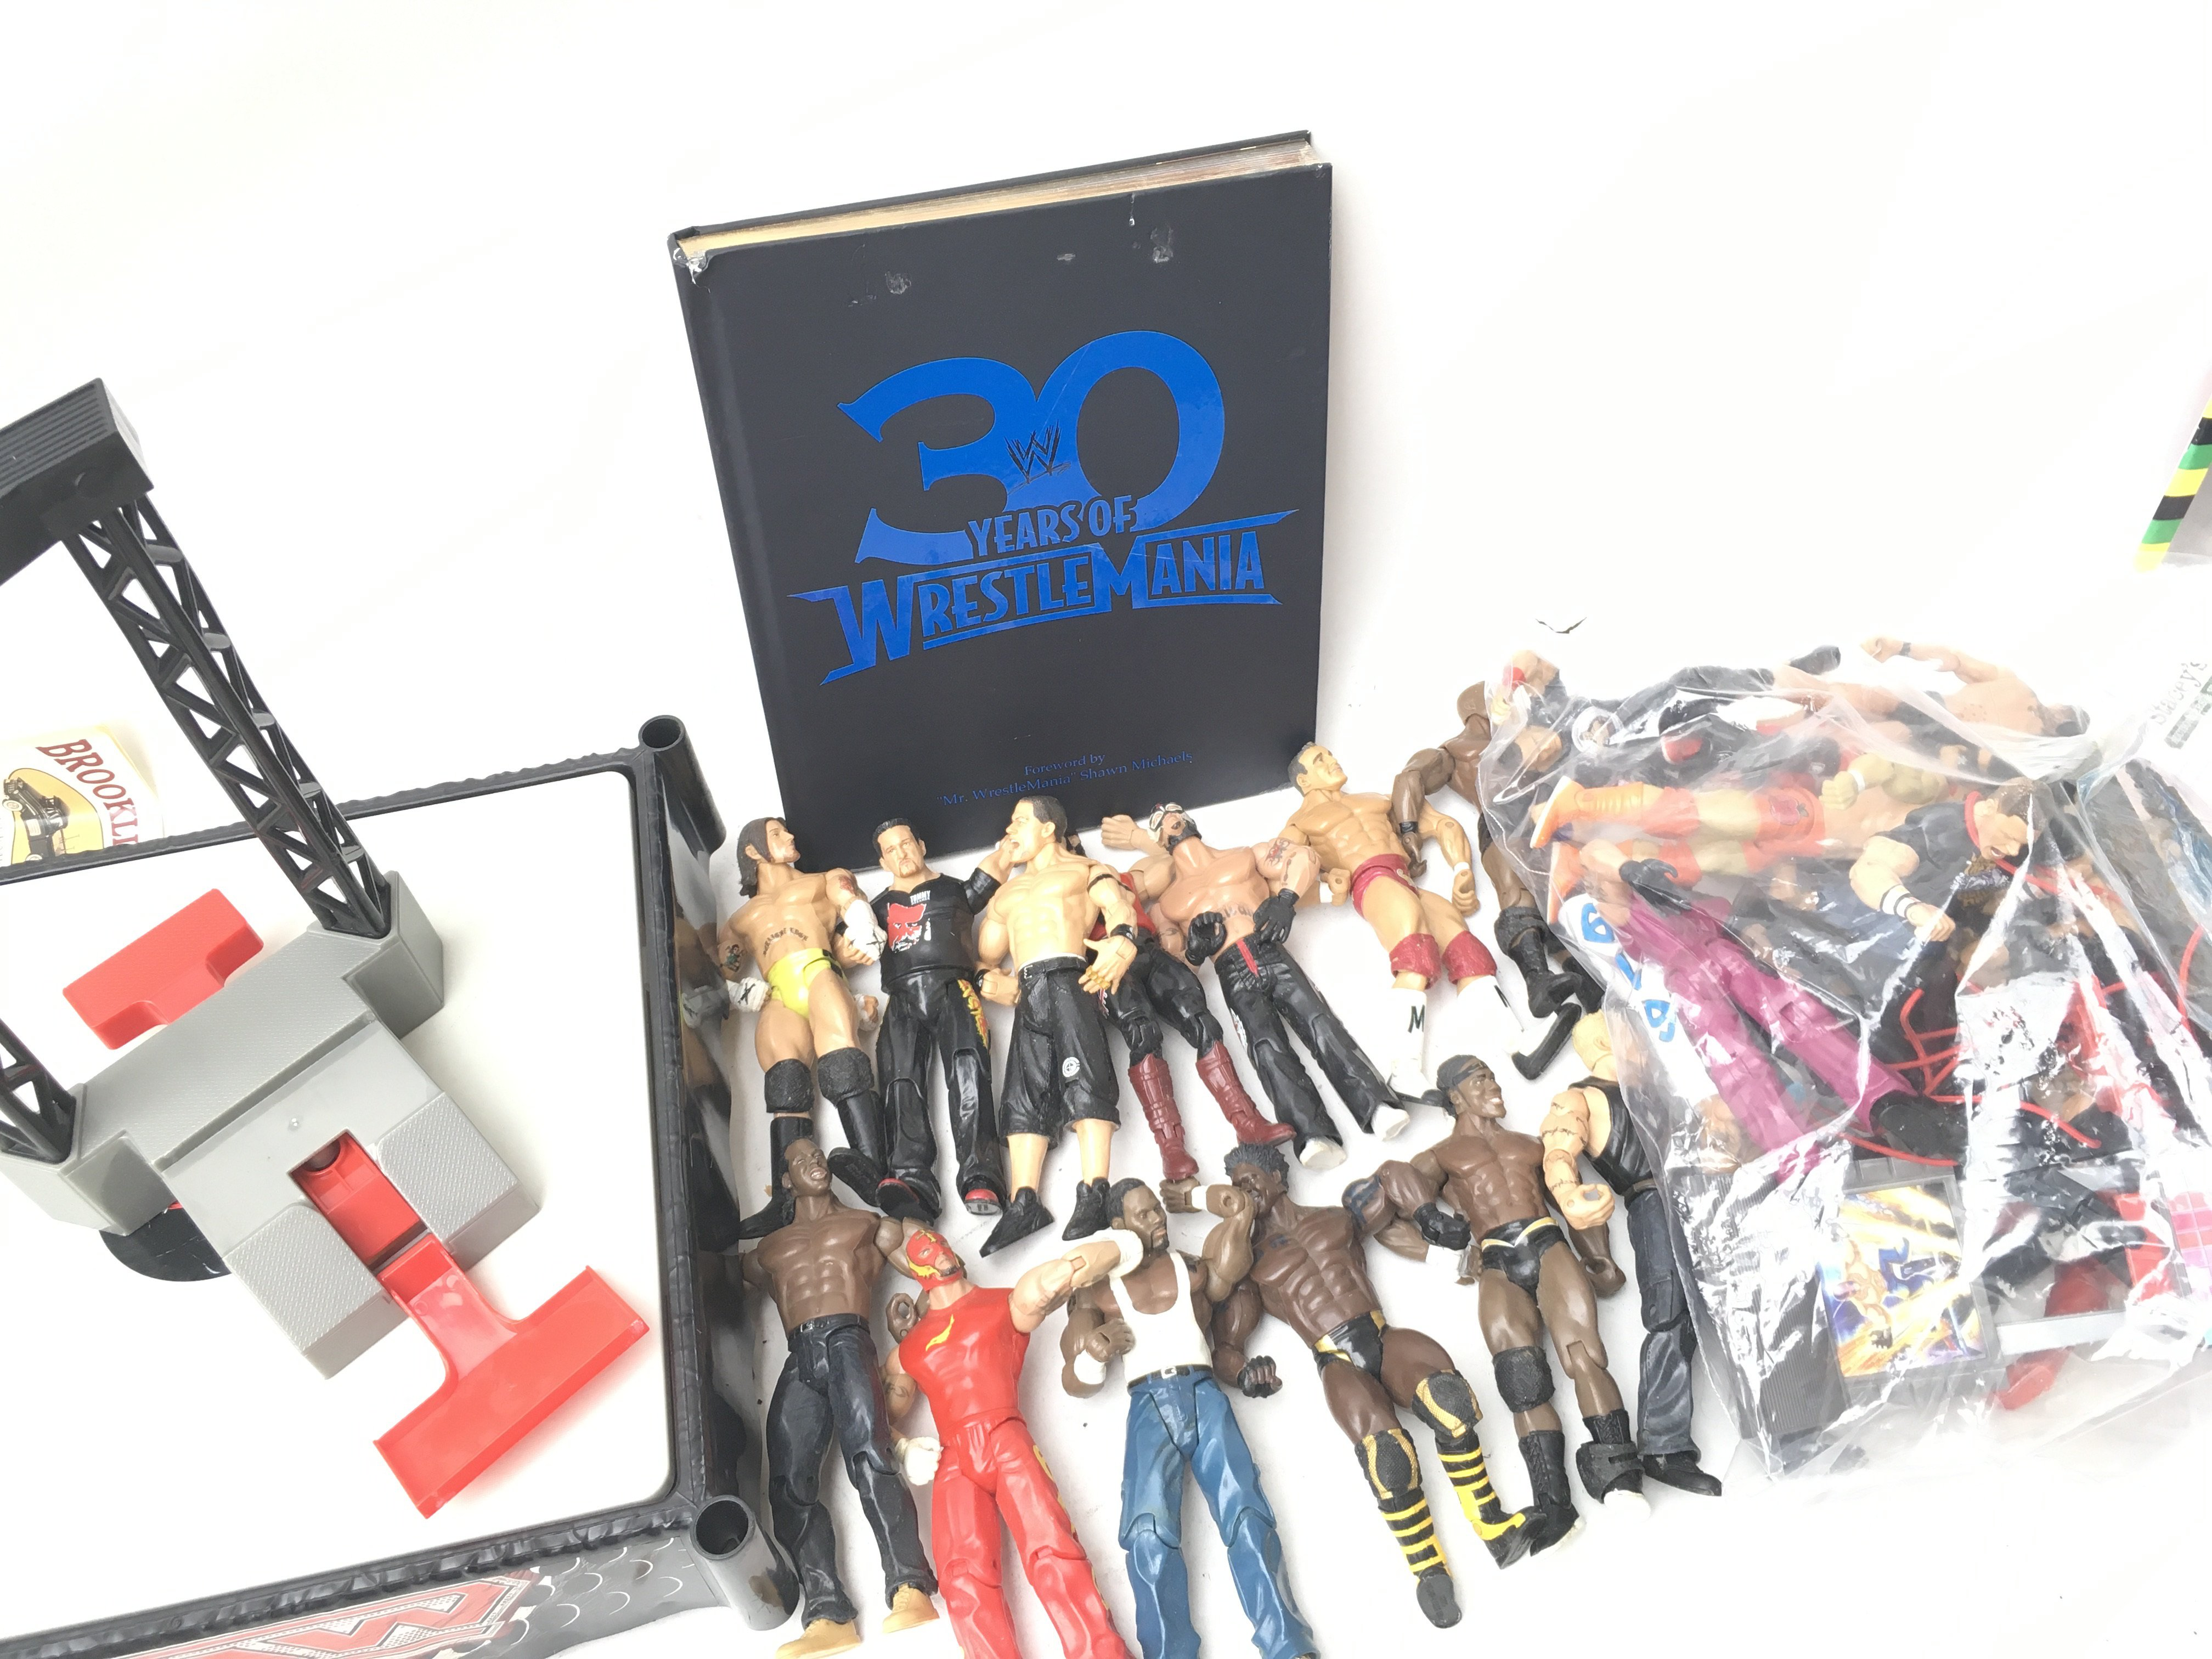 A Collection Of WWE Figures, Ring and Book.